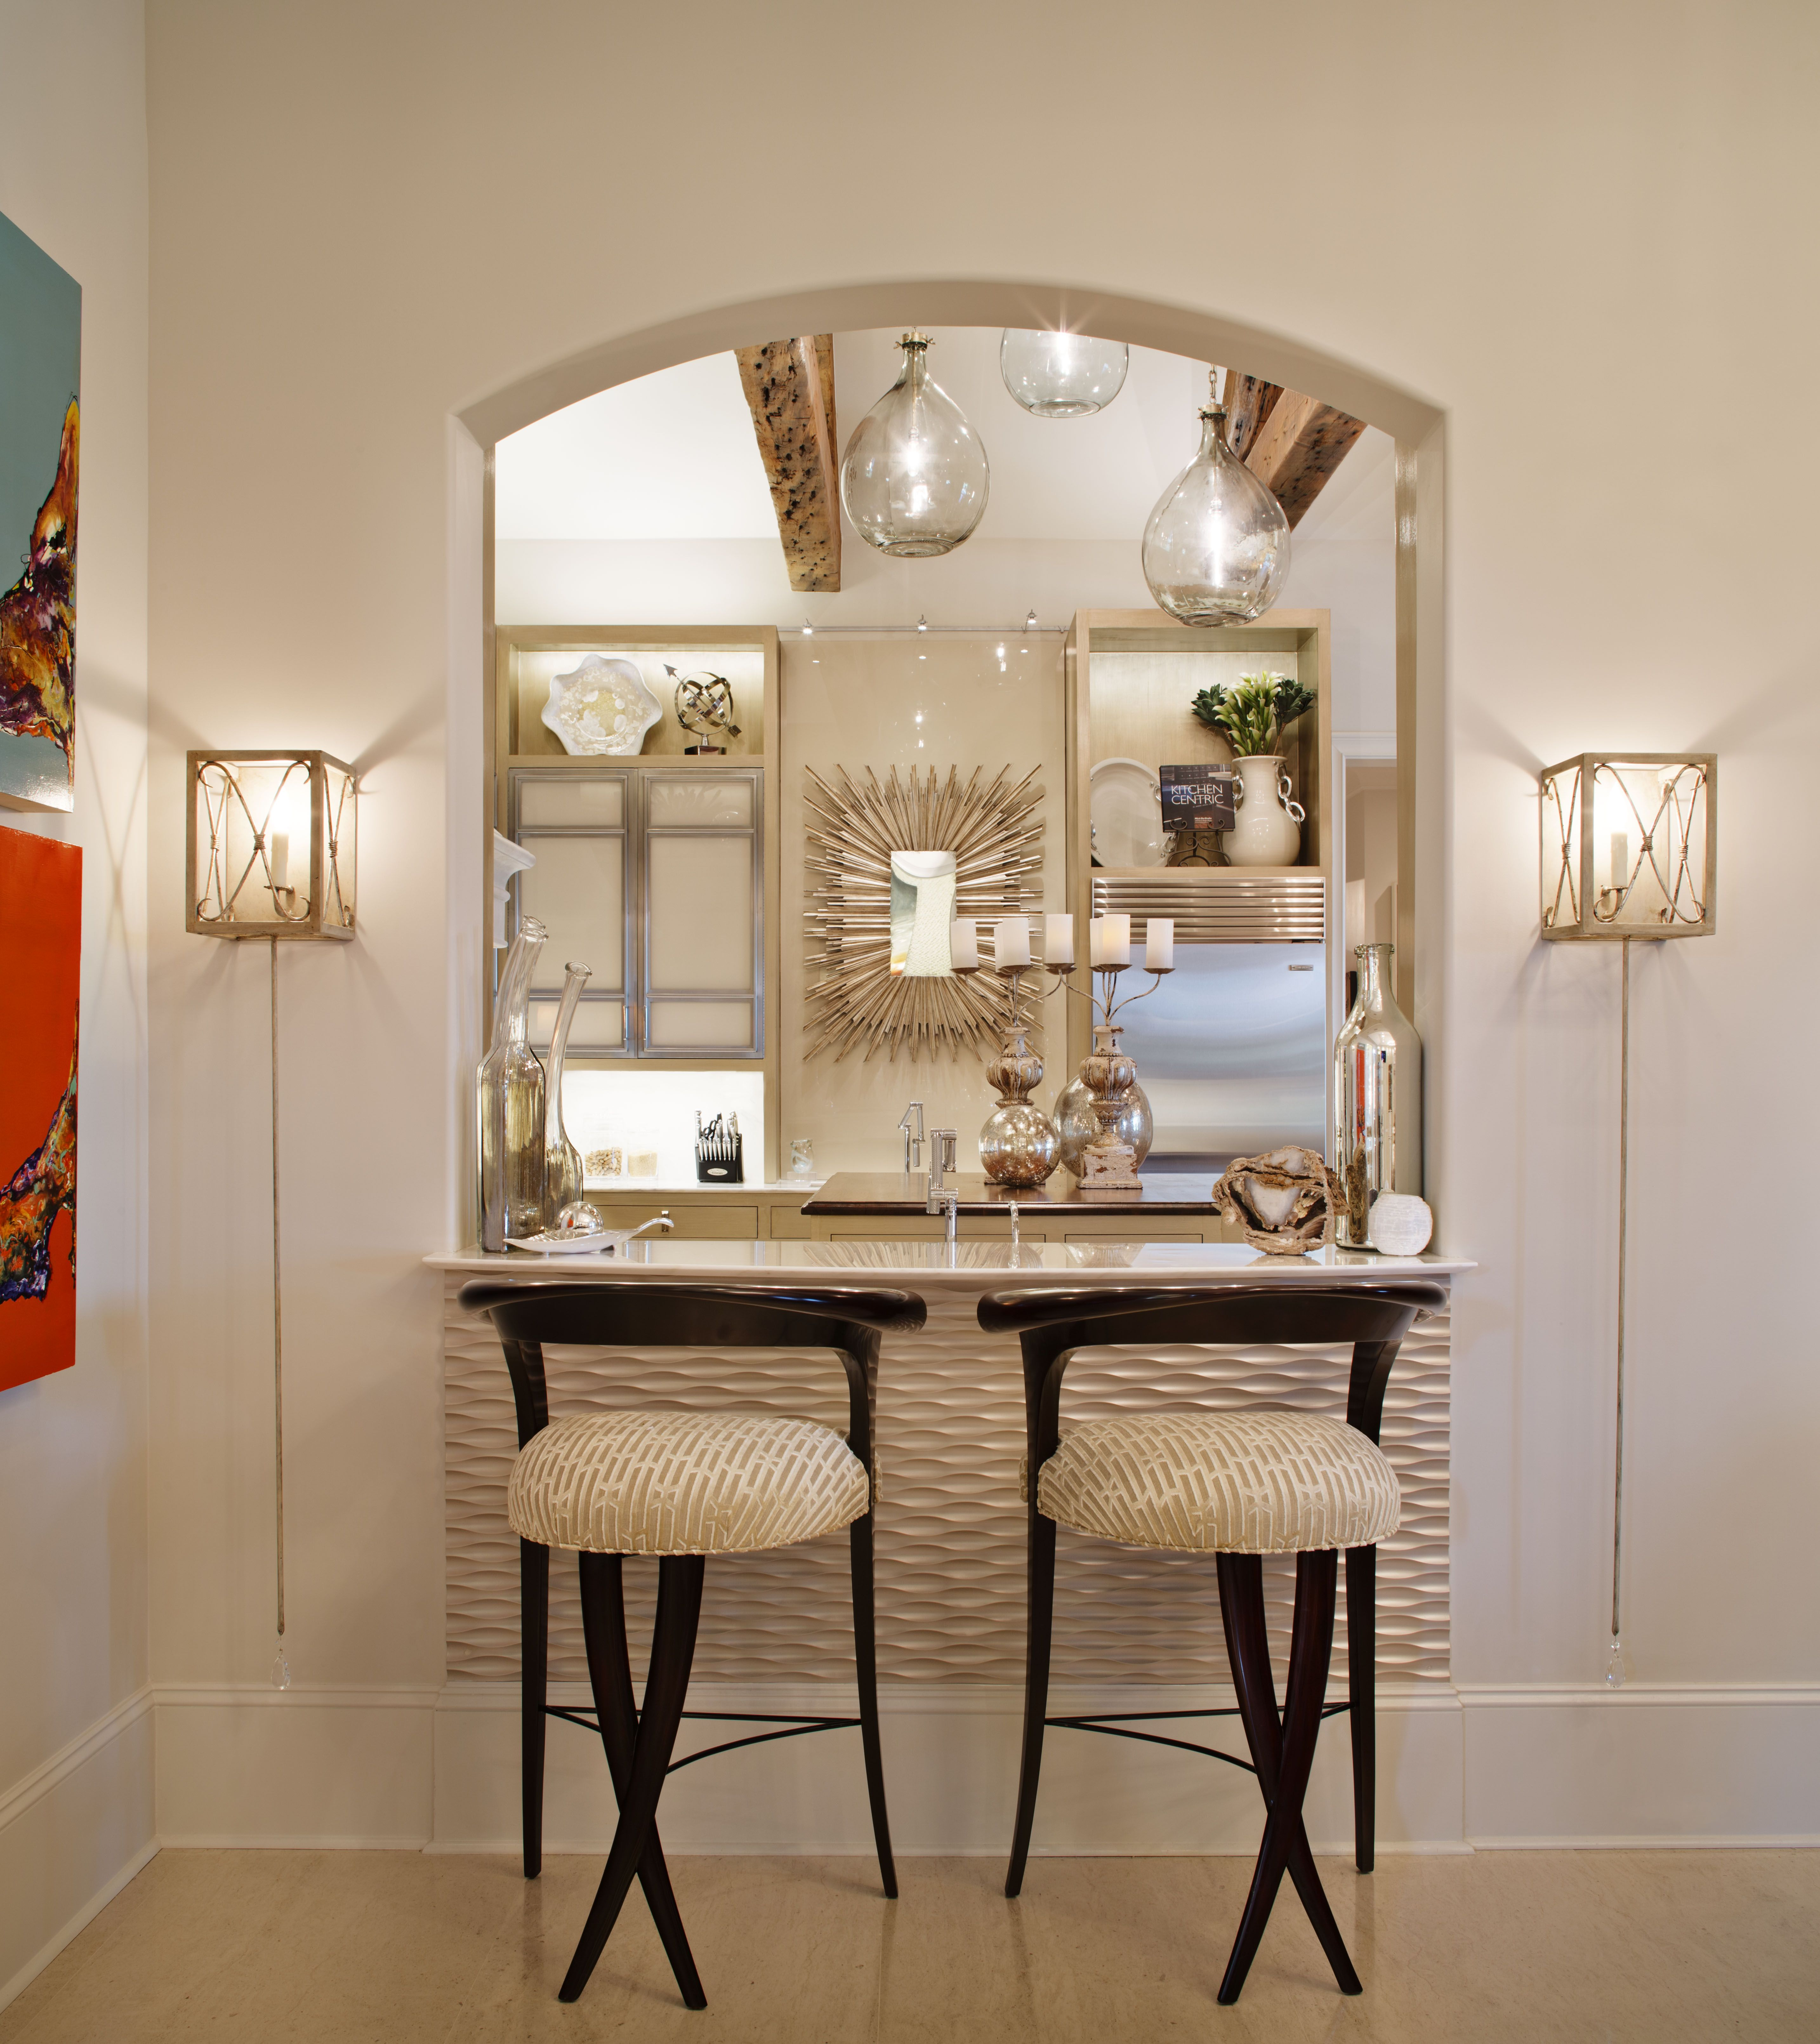 Kitchen To Dining Room Pass Through Adorable Bar Passthrough To Kitchenchristopher Guy Barstools Julie Neill Decorating Inspiration